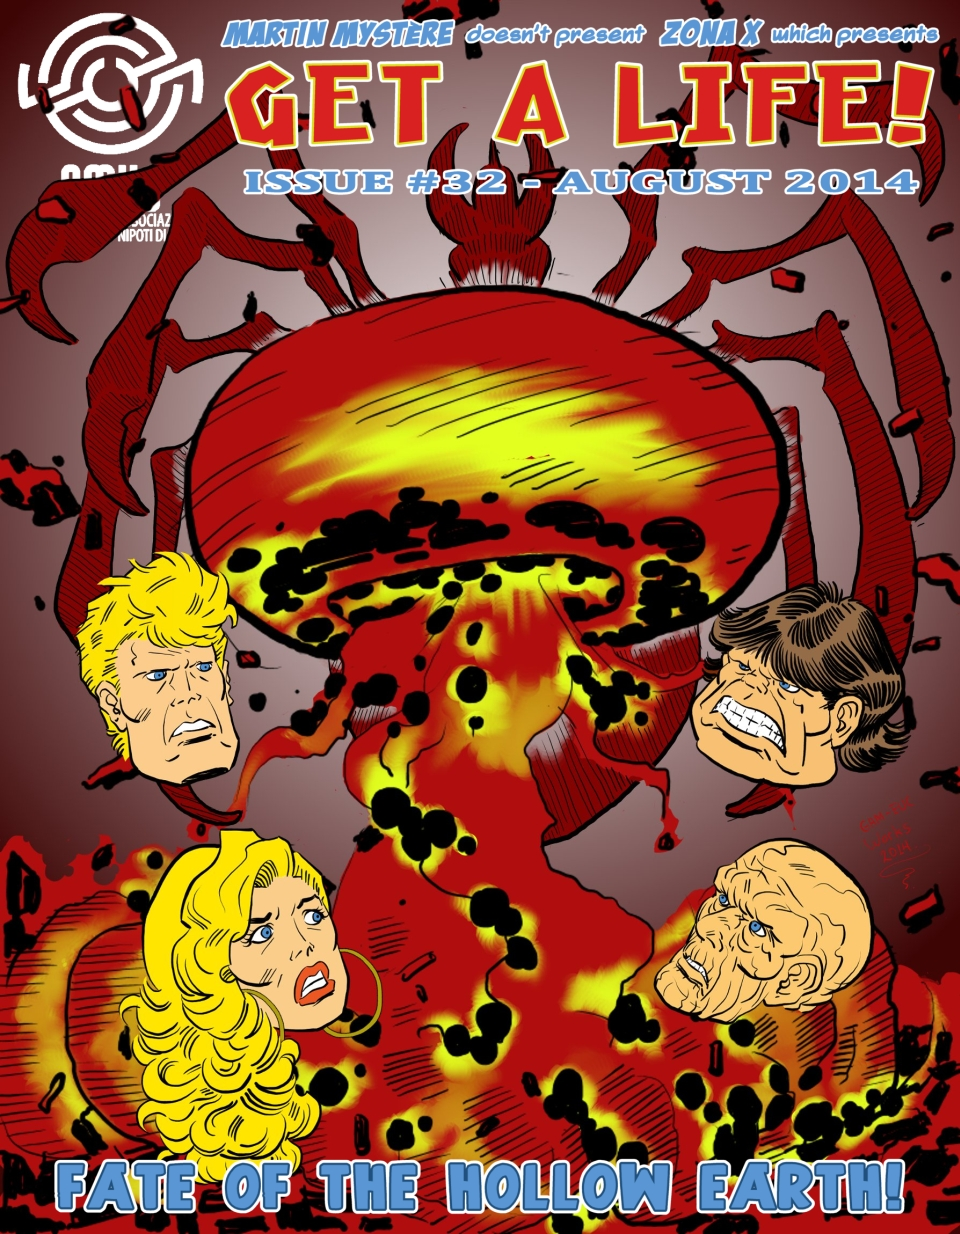 GAL 32 - The Hollow Earth Saga - part 4 - cover by martin-mystere